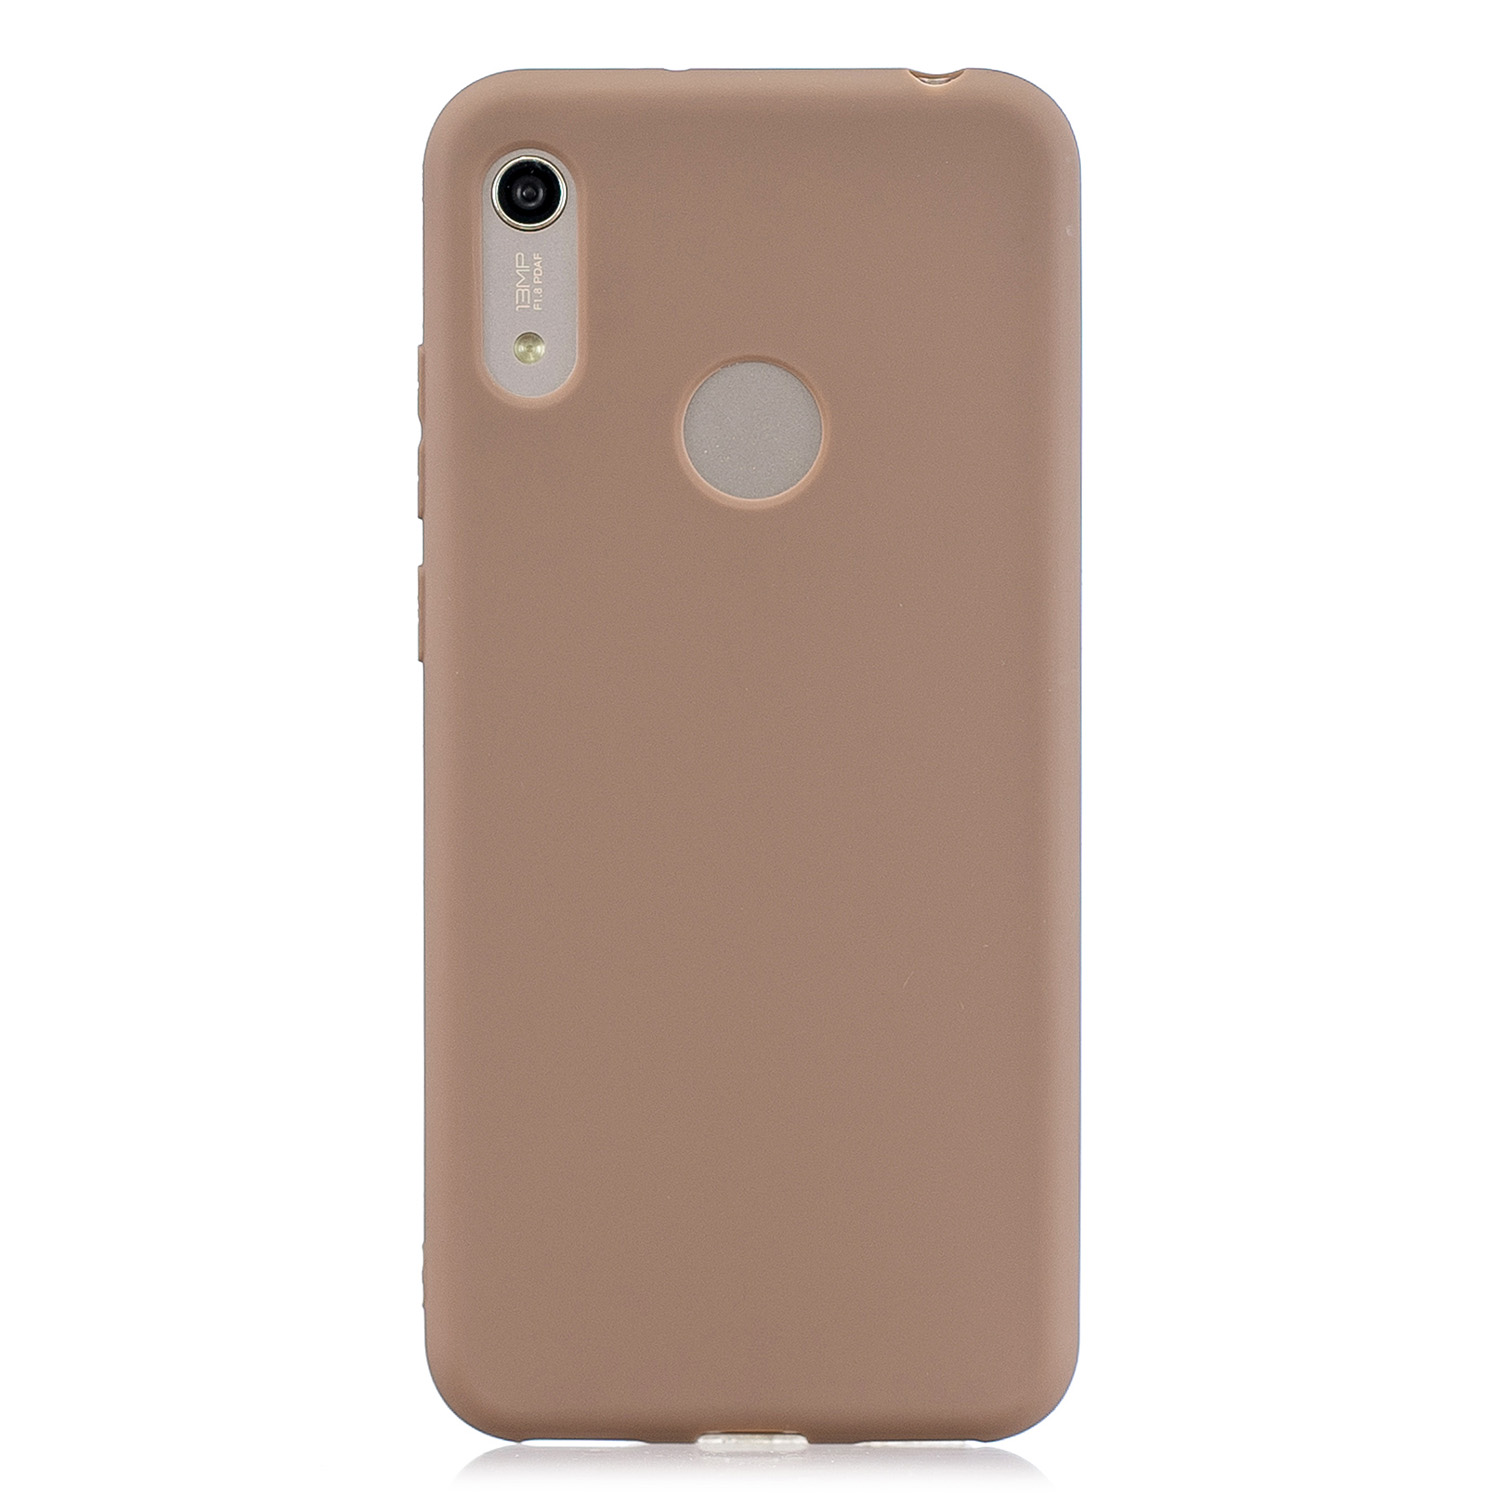 For HUAWEI Y6 2019 Lovely Candy Color Matte TPU Anti-scratch Non-slip Protective Cover Back Case 9